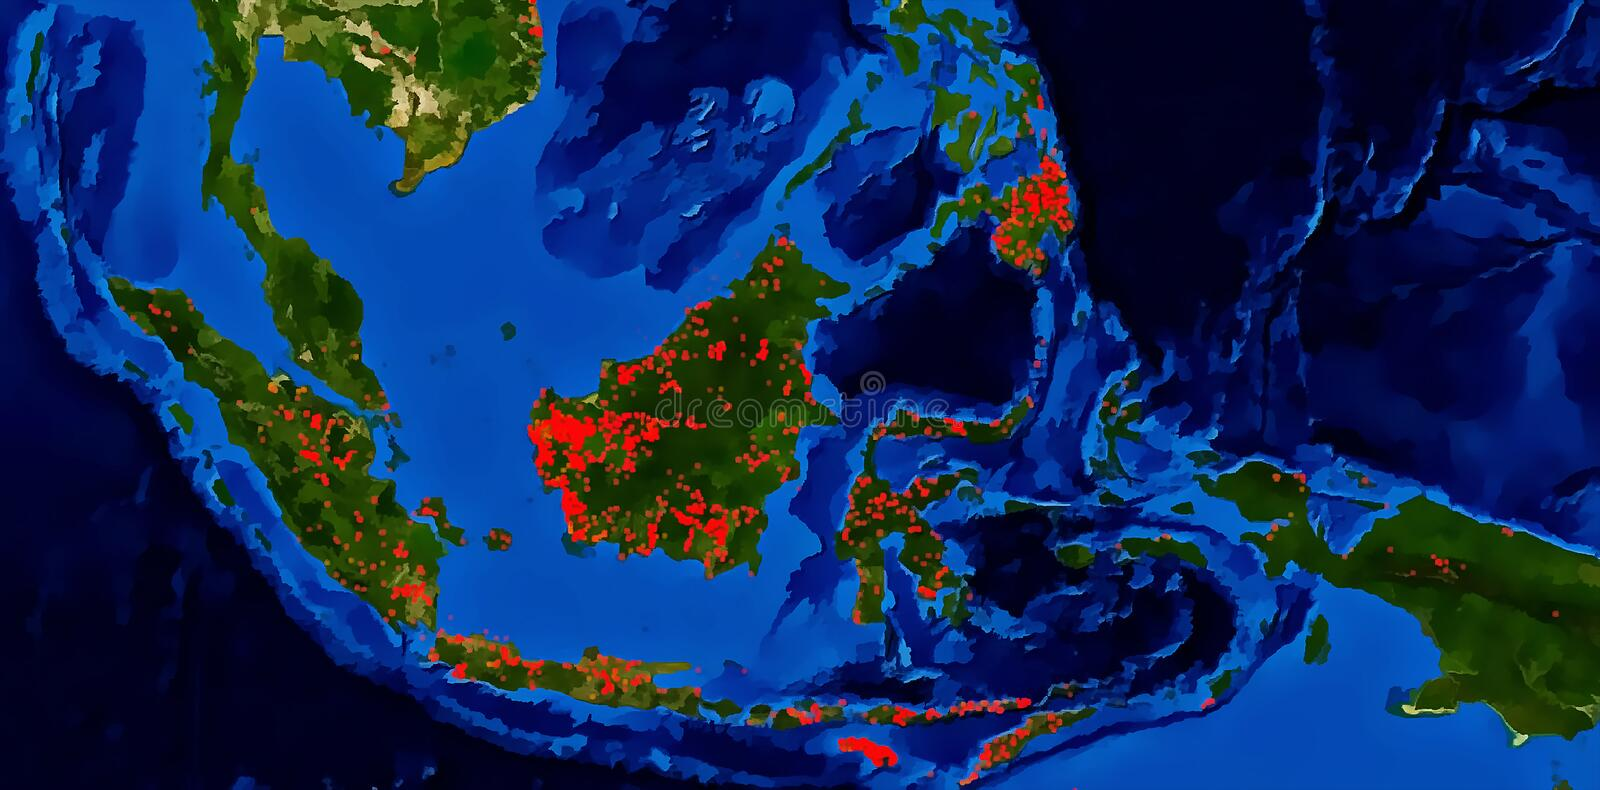 Forest fires hot spots South East Asia. Southeast Asian unhealthy air pollution haze issue due to forest fires hot spots occurs. Images are tracing from latest stock illustration